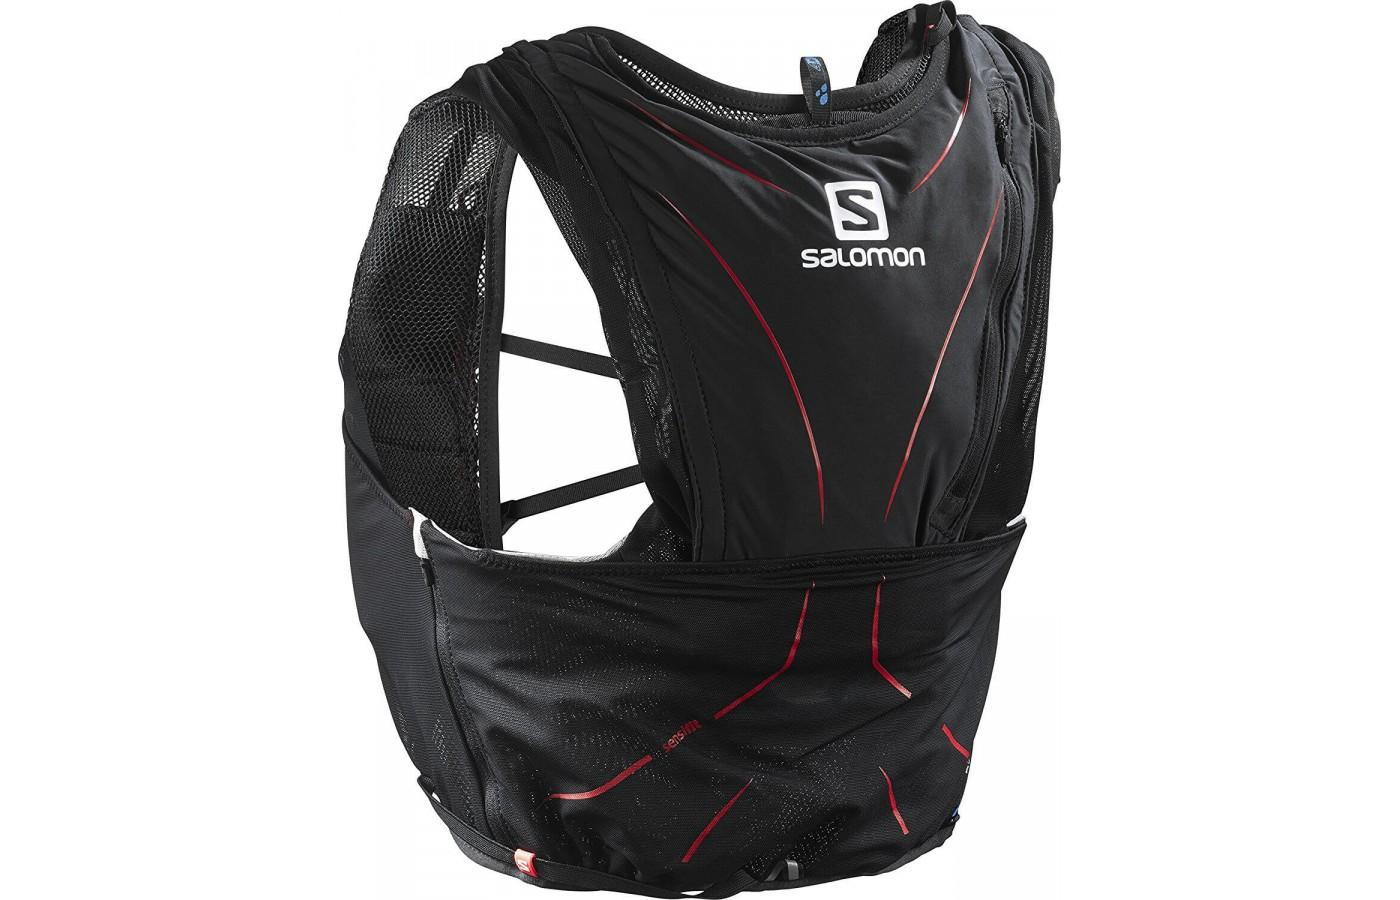 Salomon Adv Skin 12 Set Runnerclick